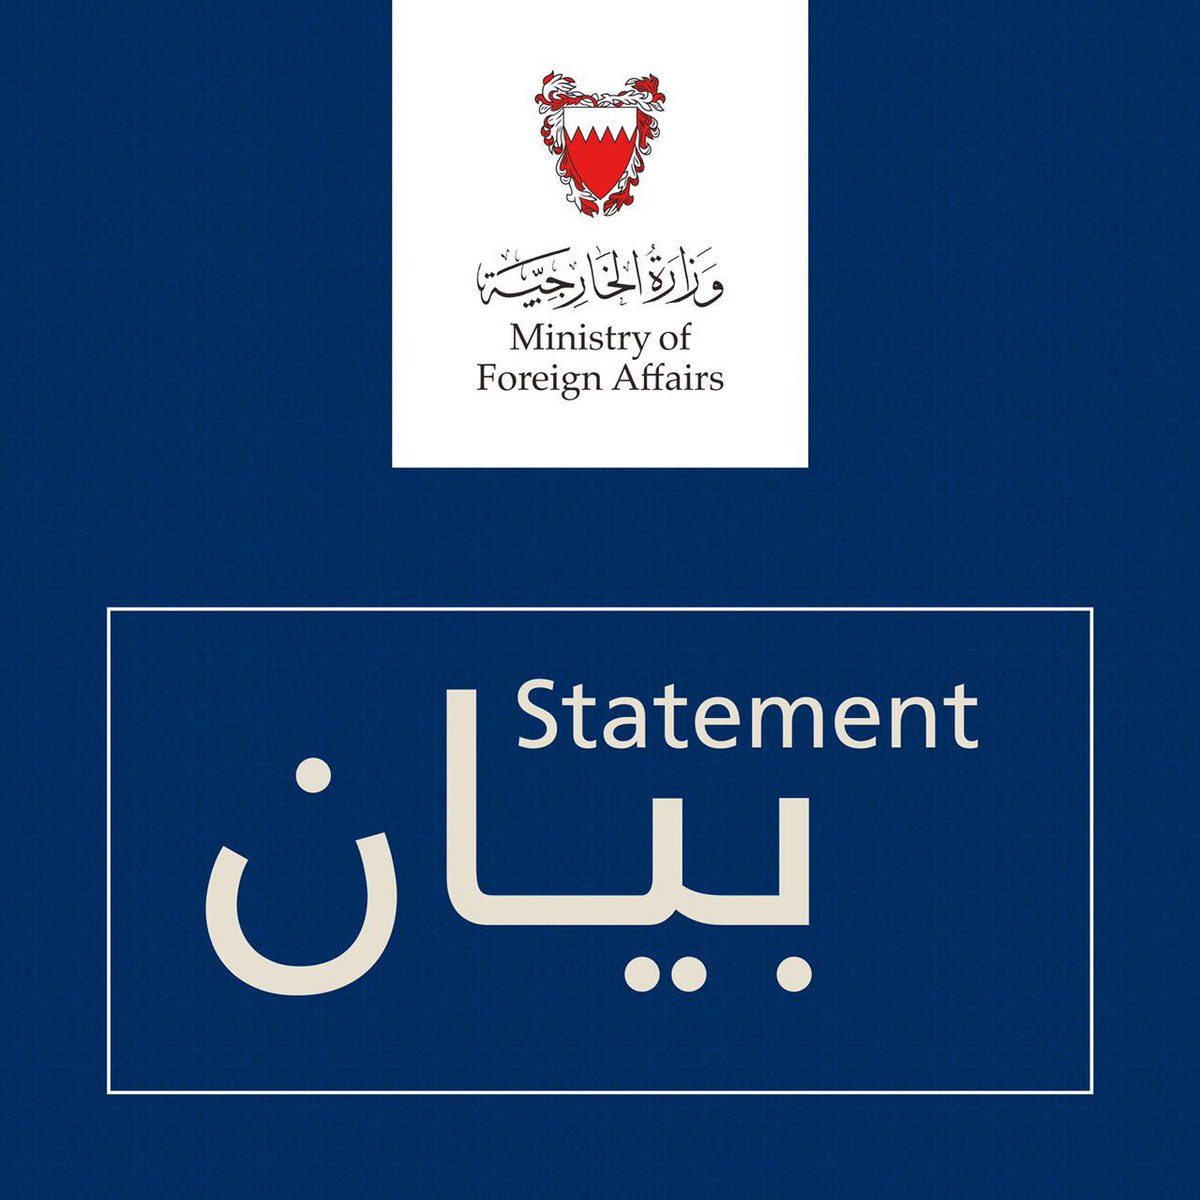 Ministry of Foreign Affairs of Kingdom of Bahrain condemns terrorist bombing in New York, United States of America https://t.co/aMfWoDkG0p